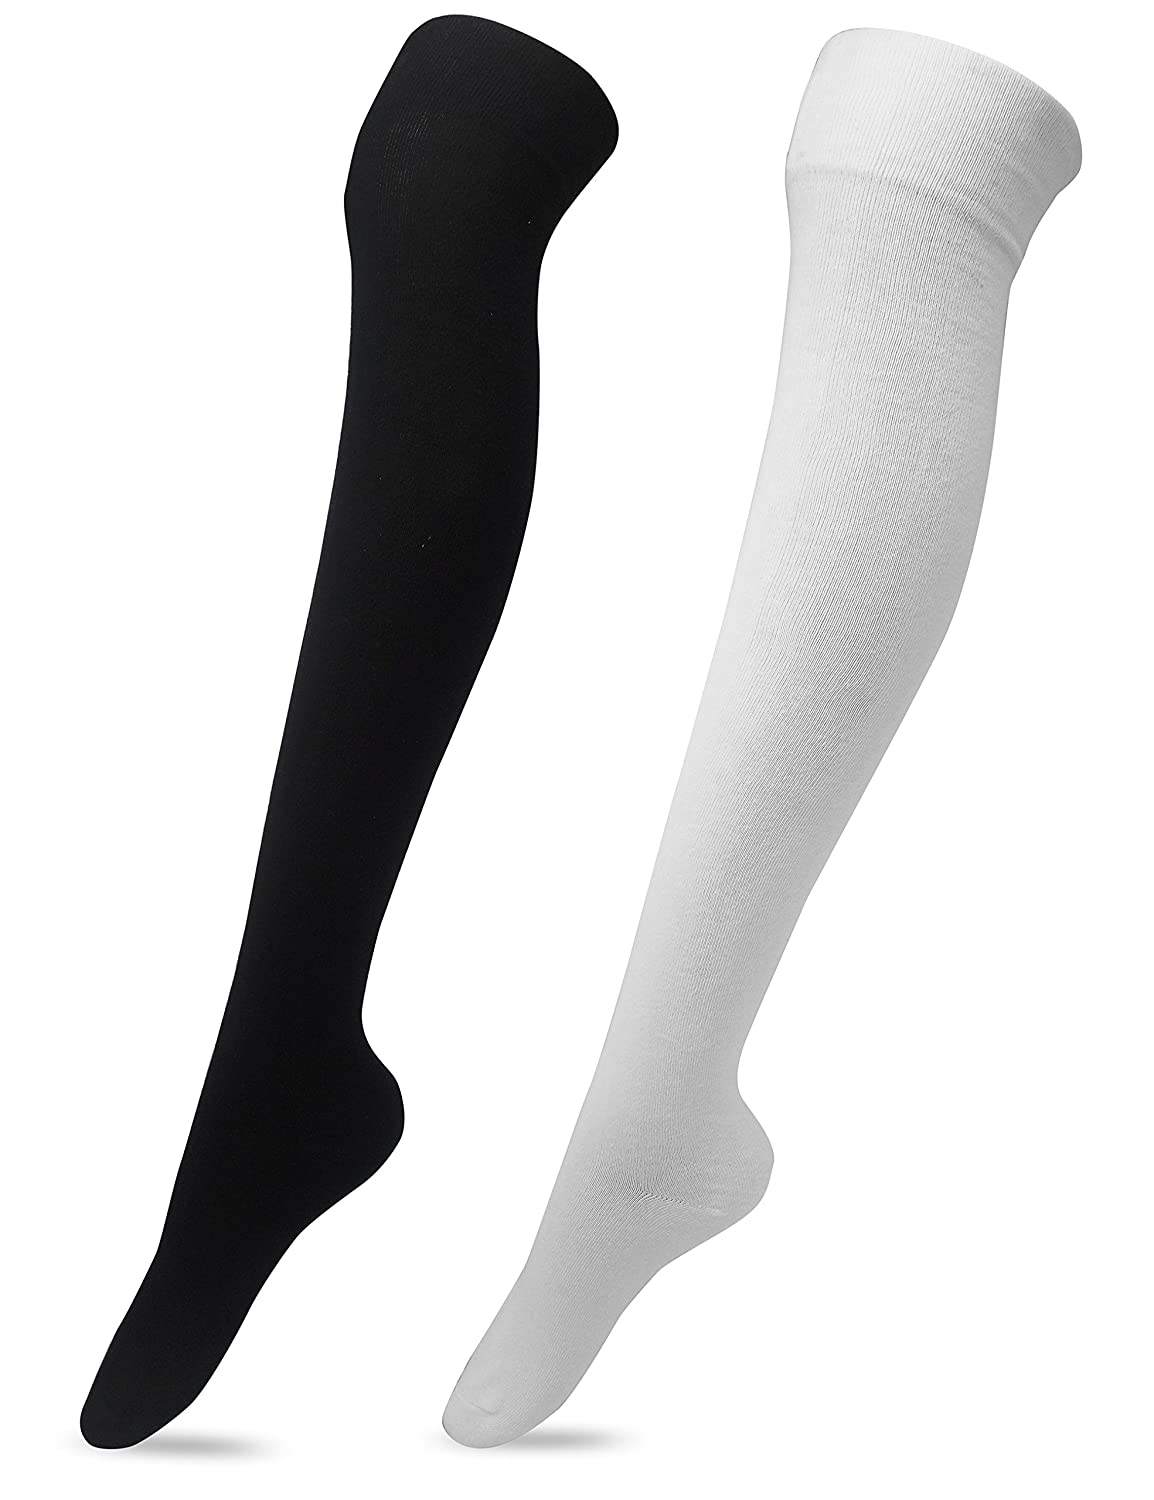 a48a6652b17 Women s Over The Knee High Socks 2 Pairs